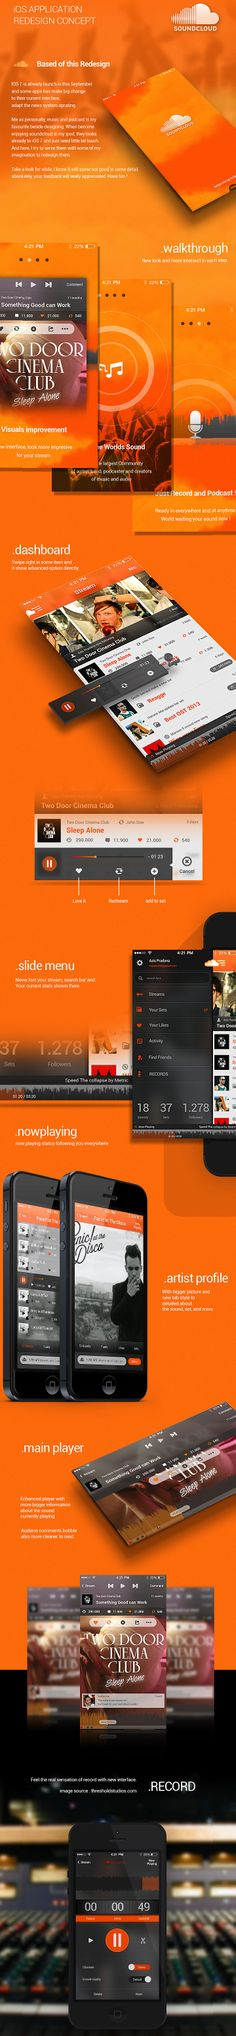 Here's an interesting re-design for the soundcloud app. The orange and red hues really help tie everything together from the main brand and the grays and whites really help tie in all the elements.